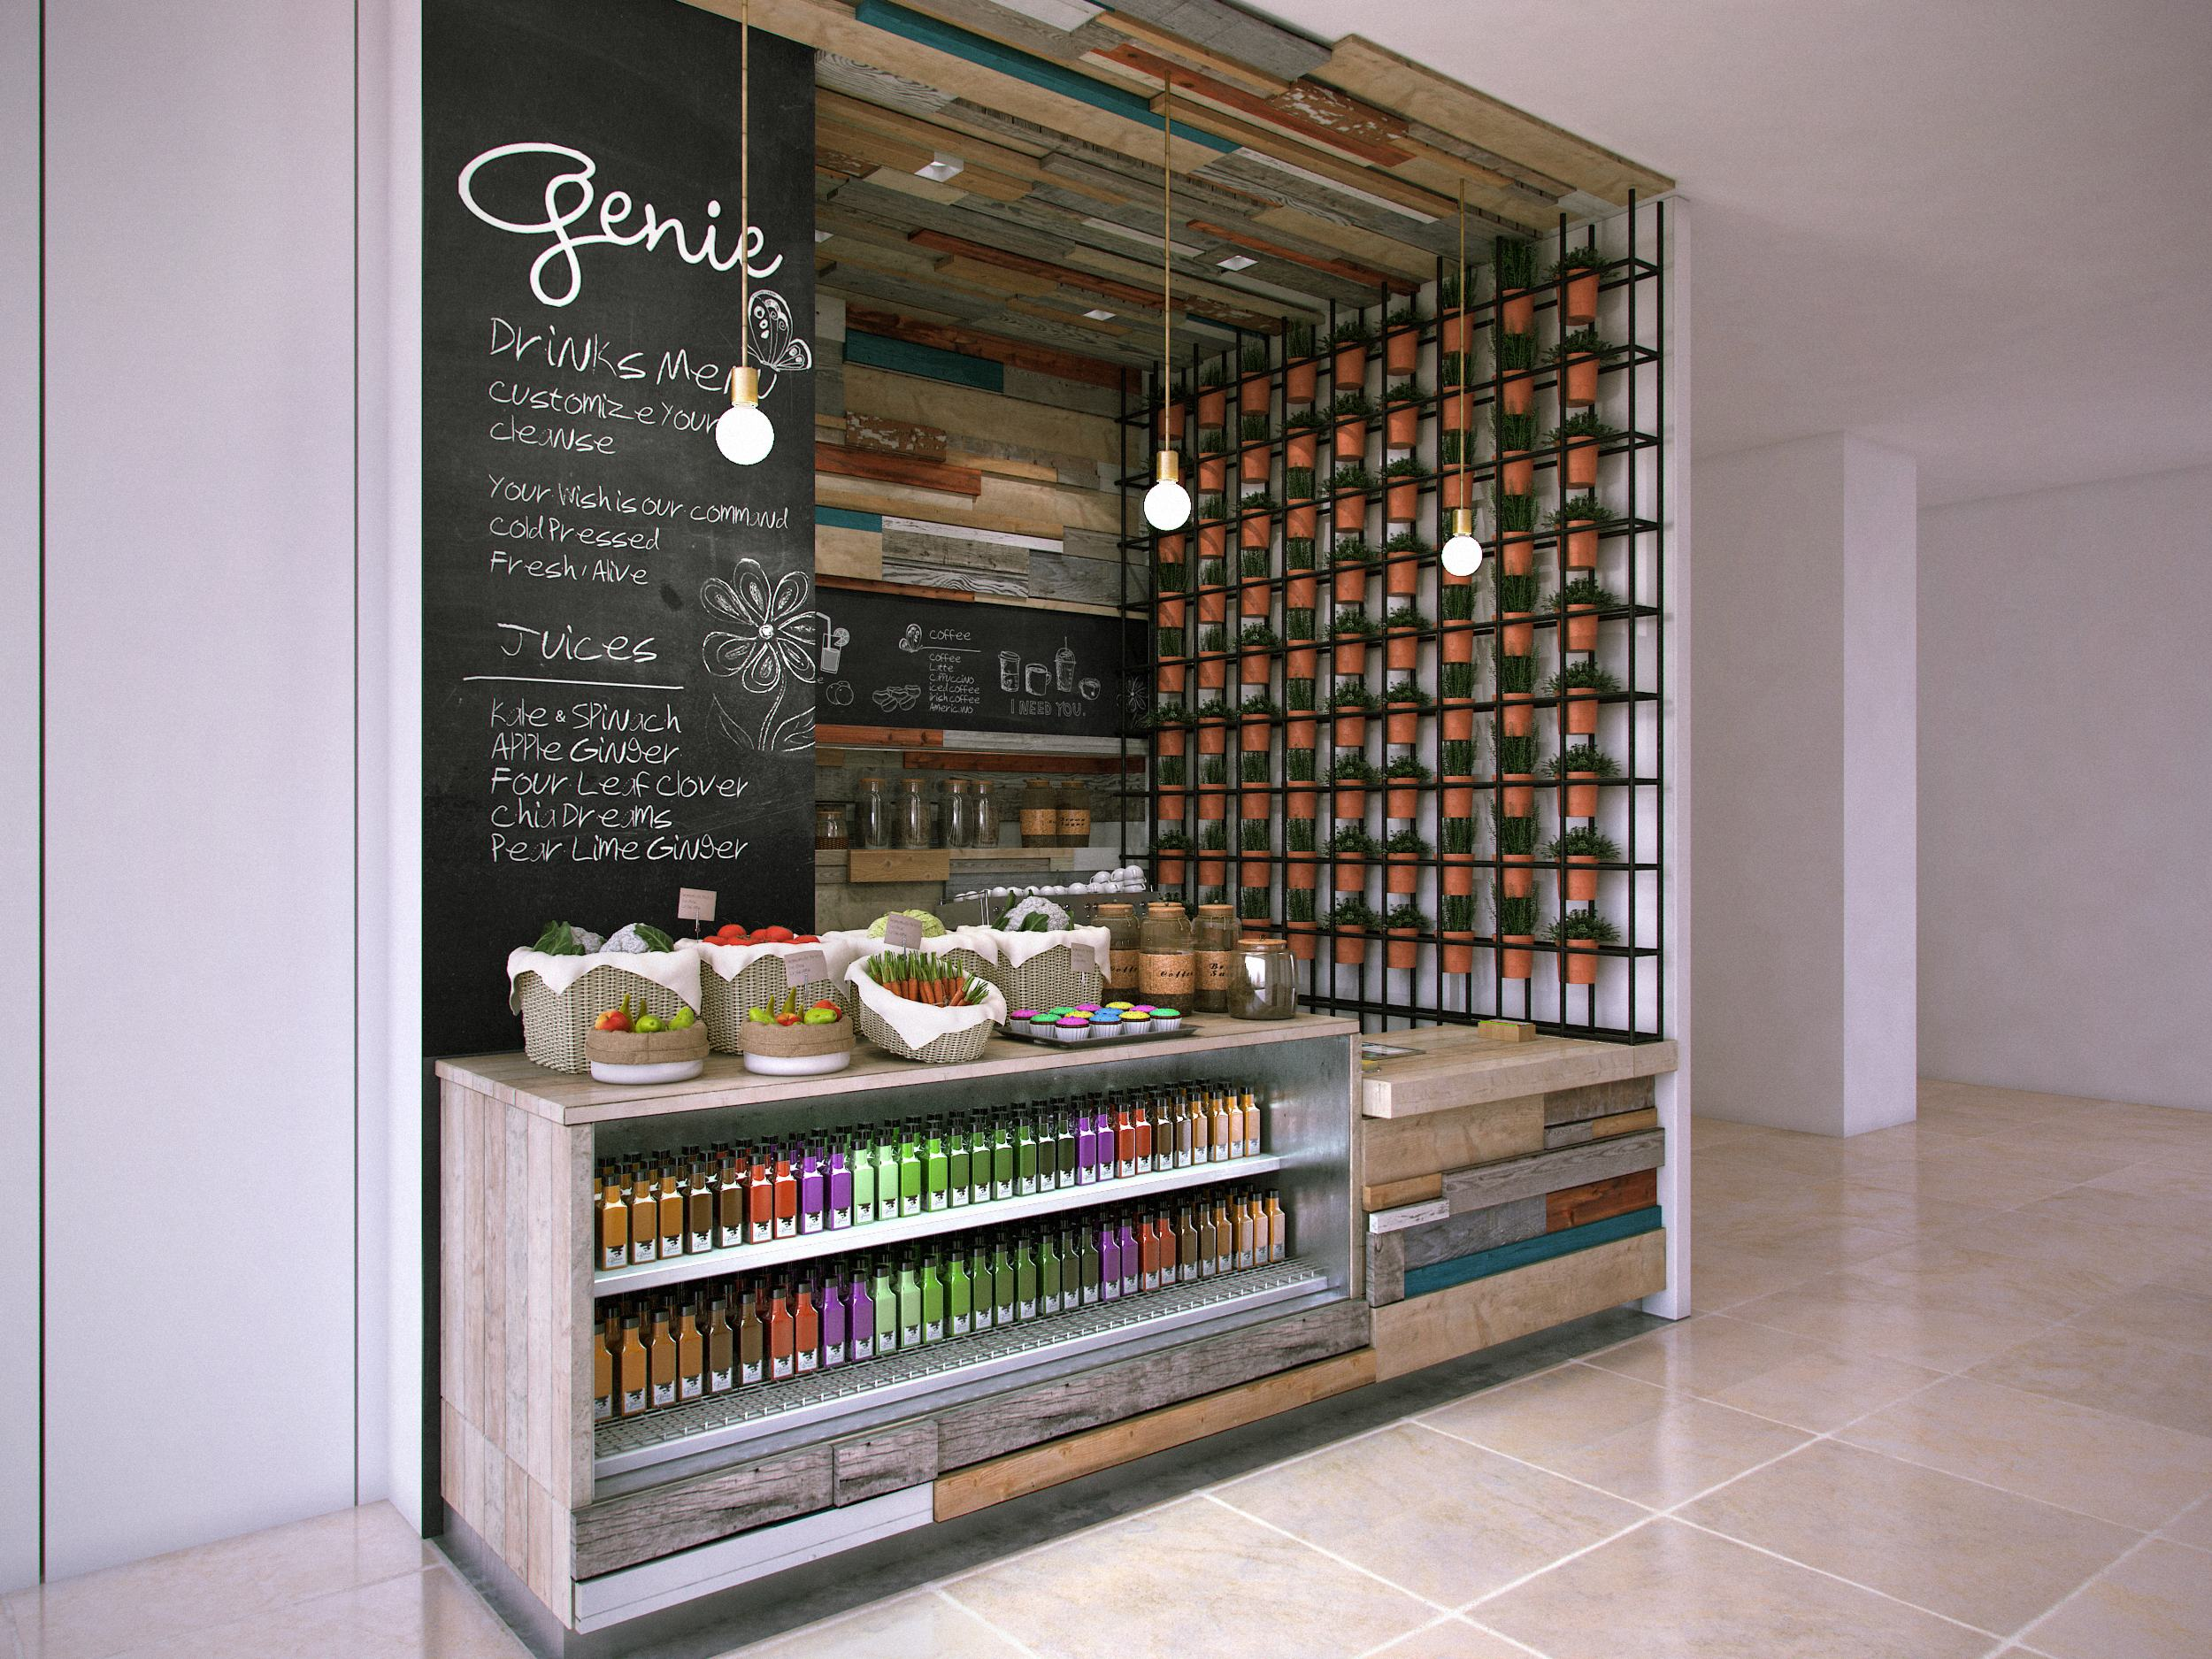 Genie Juice Bar Mitchel Squires Associates Architecture